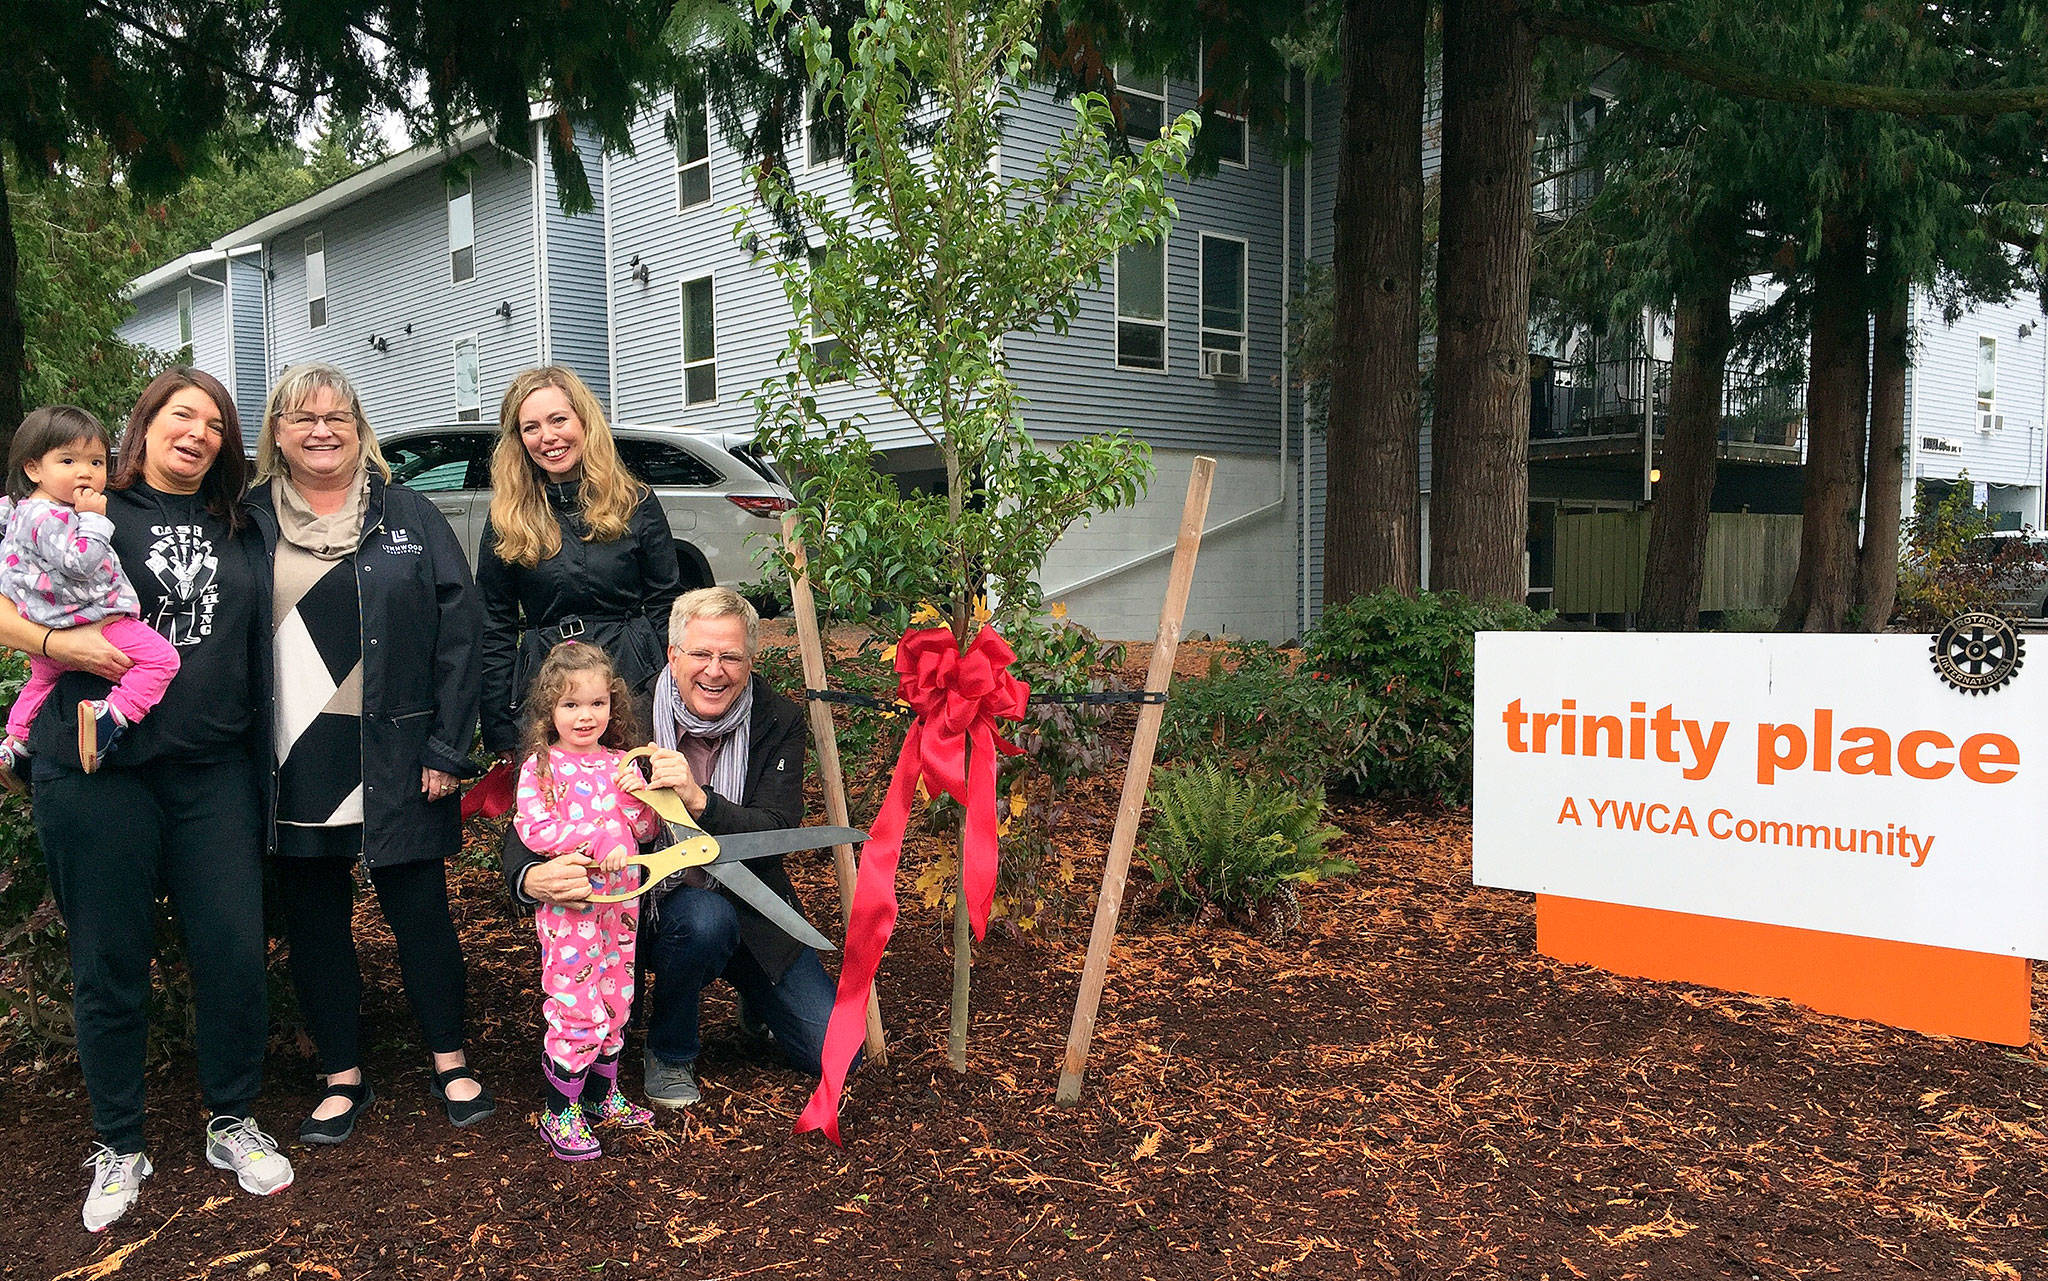 Rick Steves (right) at Trinity Place, the Lynnwood property he donated this year to YWCA Snohomish County. He was joined by (from left) Trinity Place resident Ricanna (holding child), Lynnwood Mayor Nicola Smith and YWCA Executive Director Mary Anne Dillon. (Contributed photo)